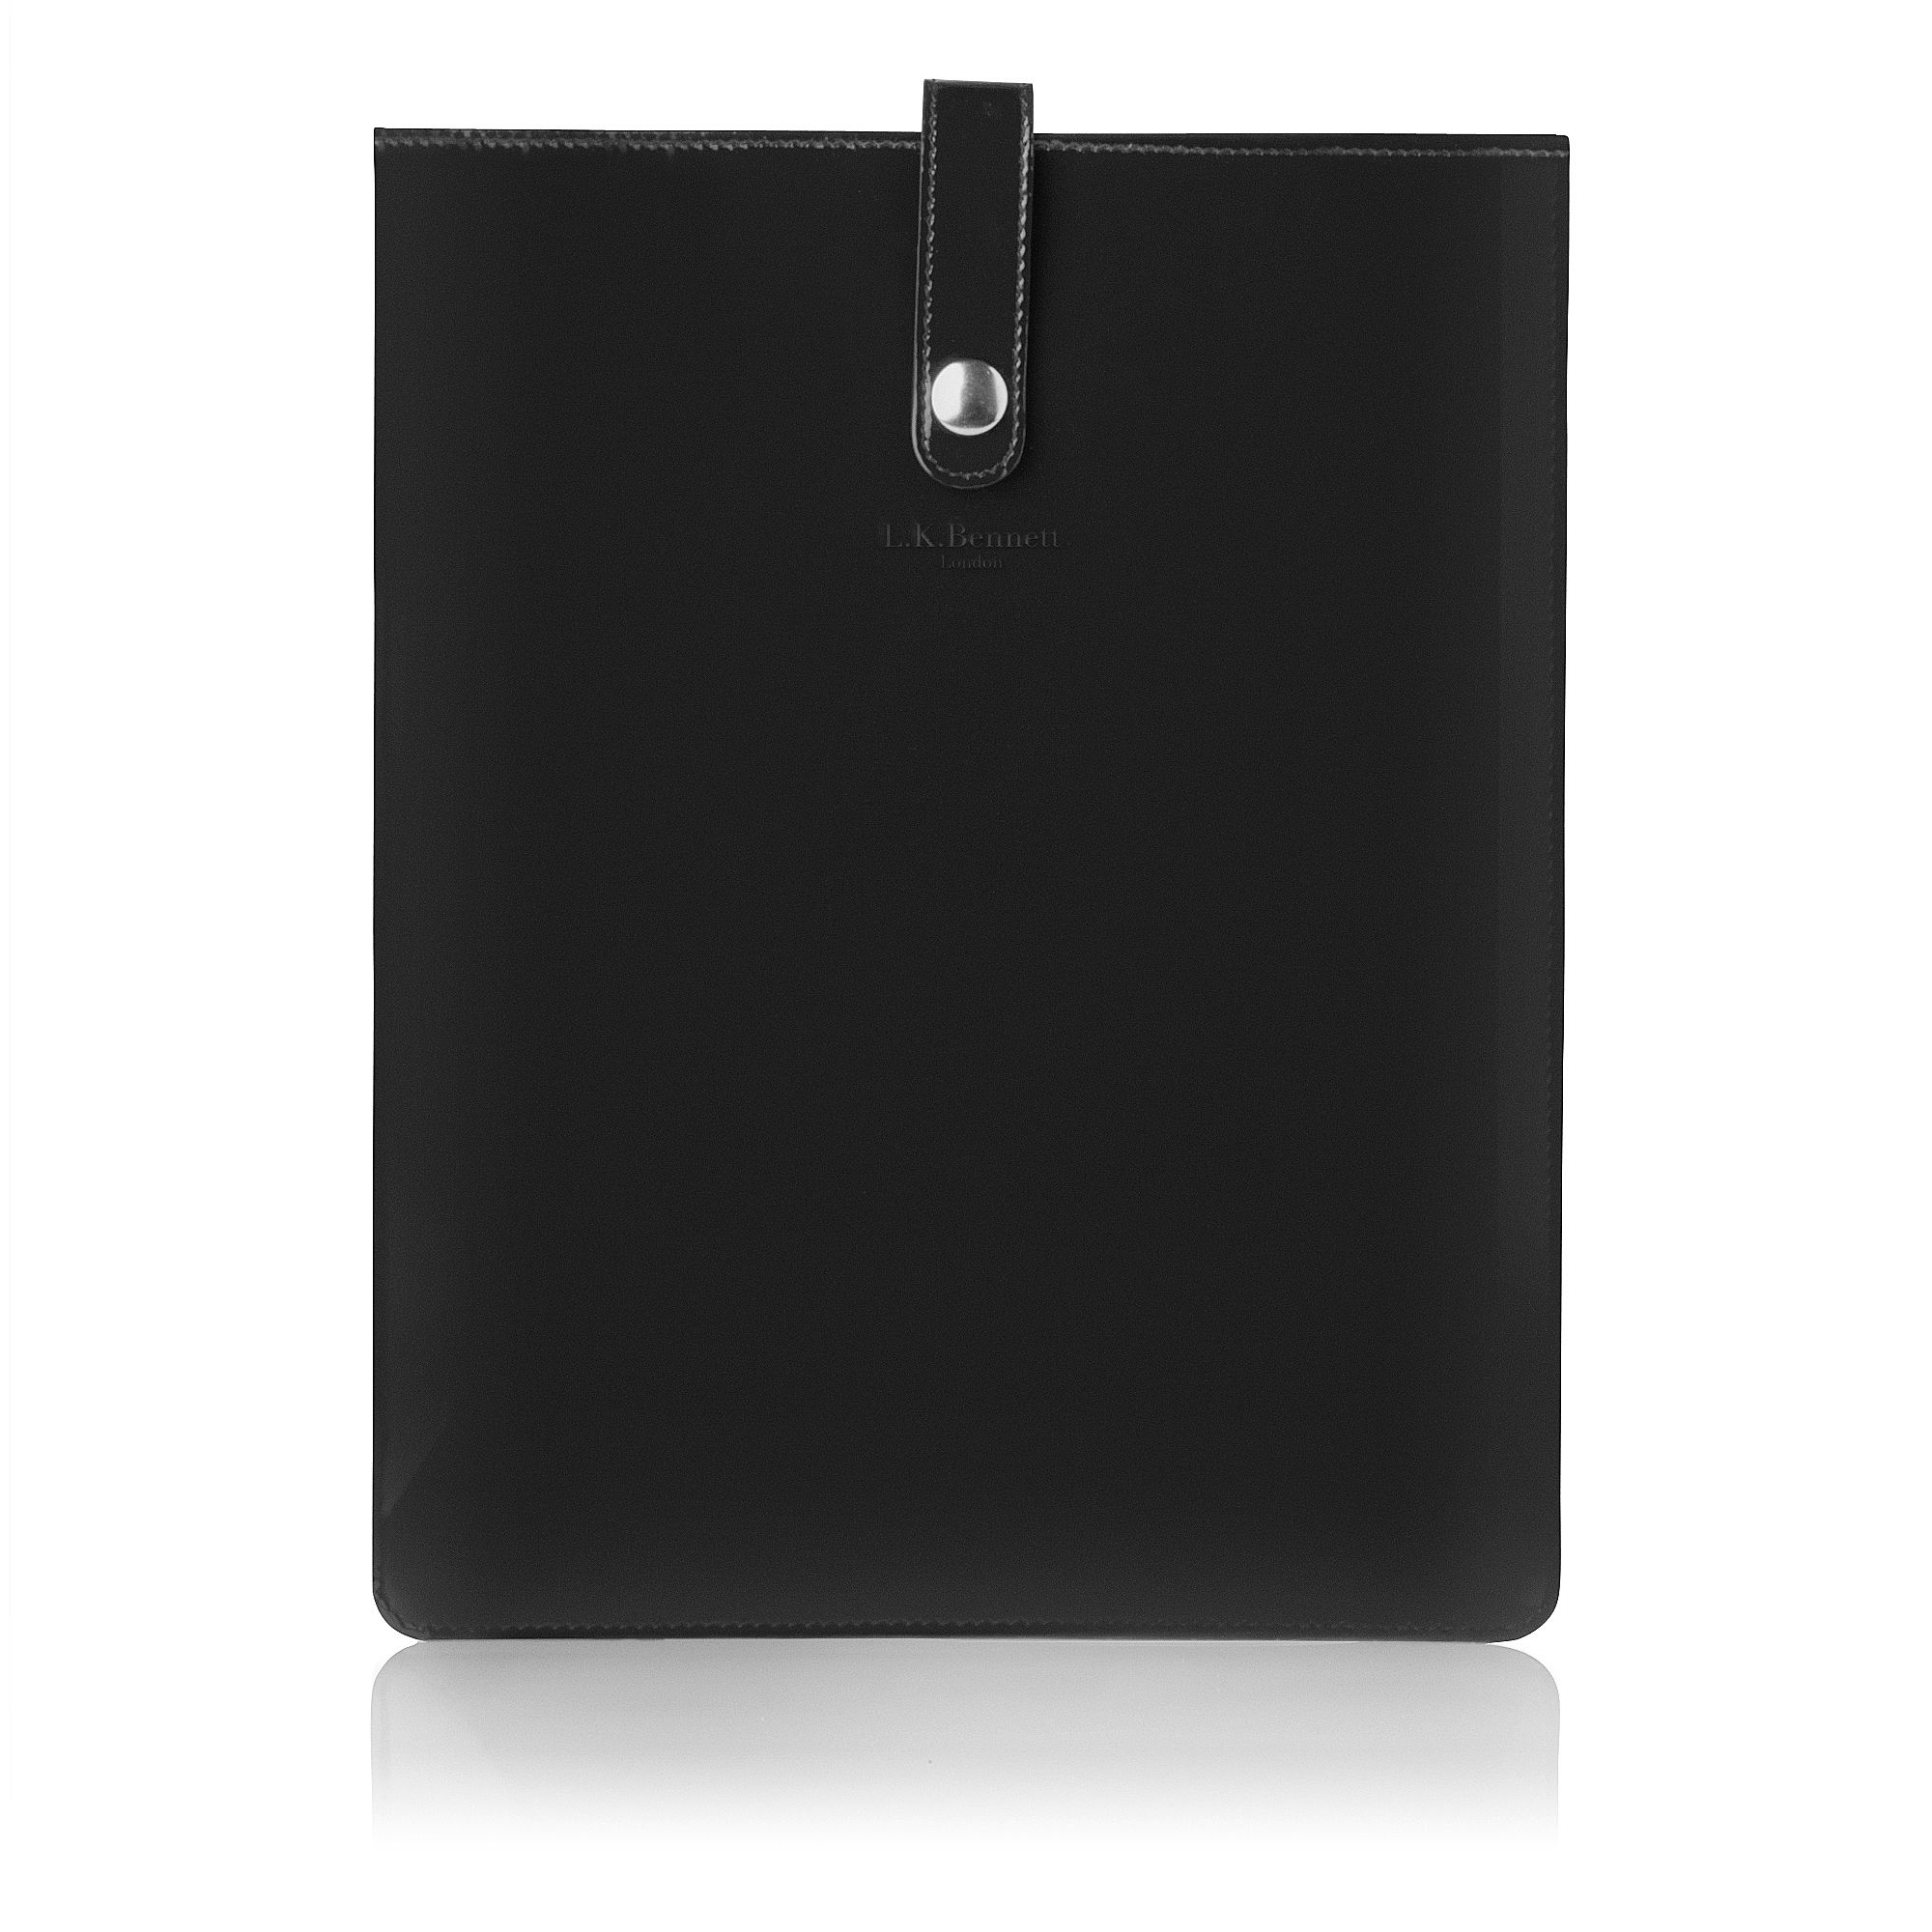 Liz black iPad cover